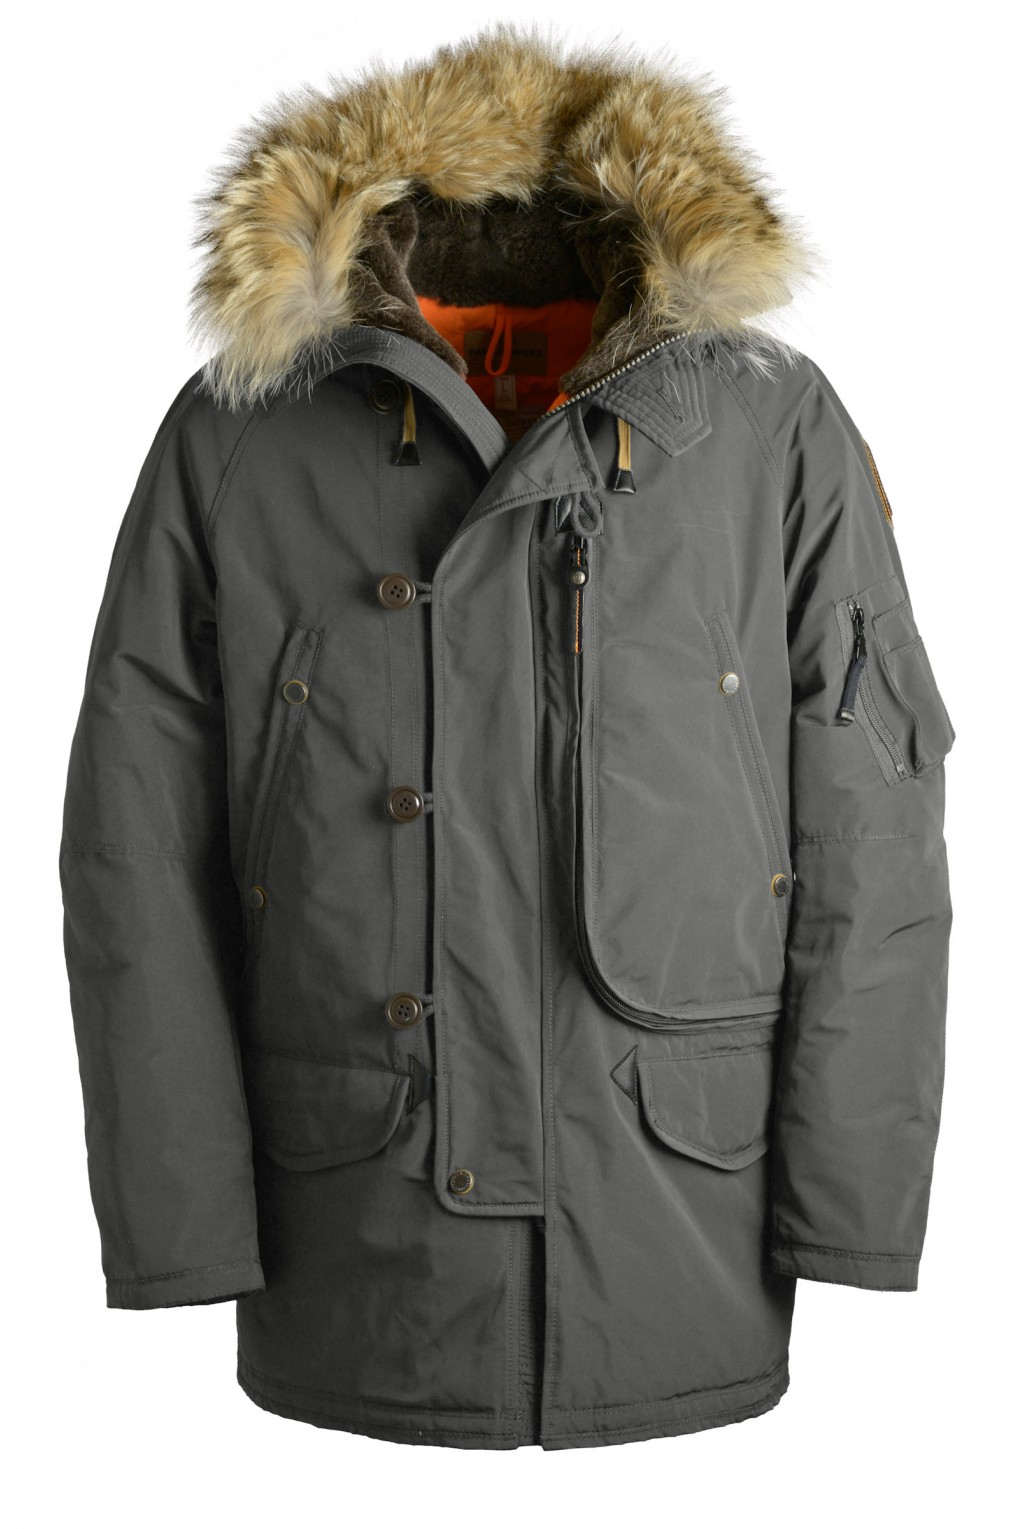 parajumpers TYPE N-3B man outerwear Sage